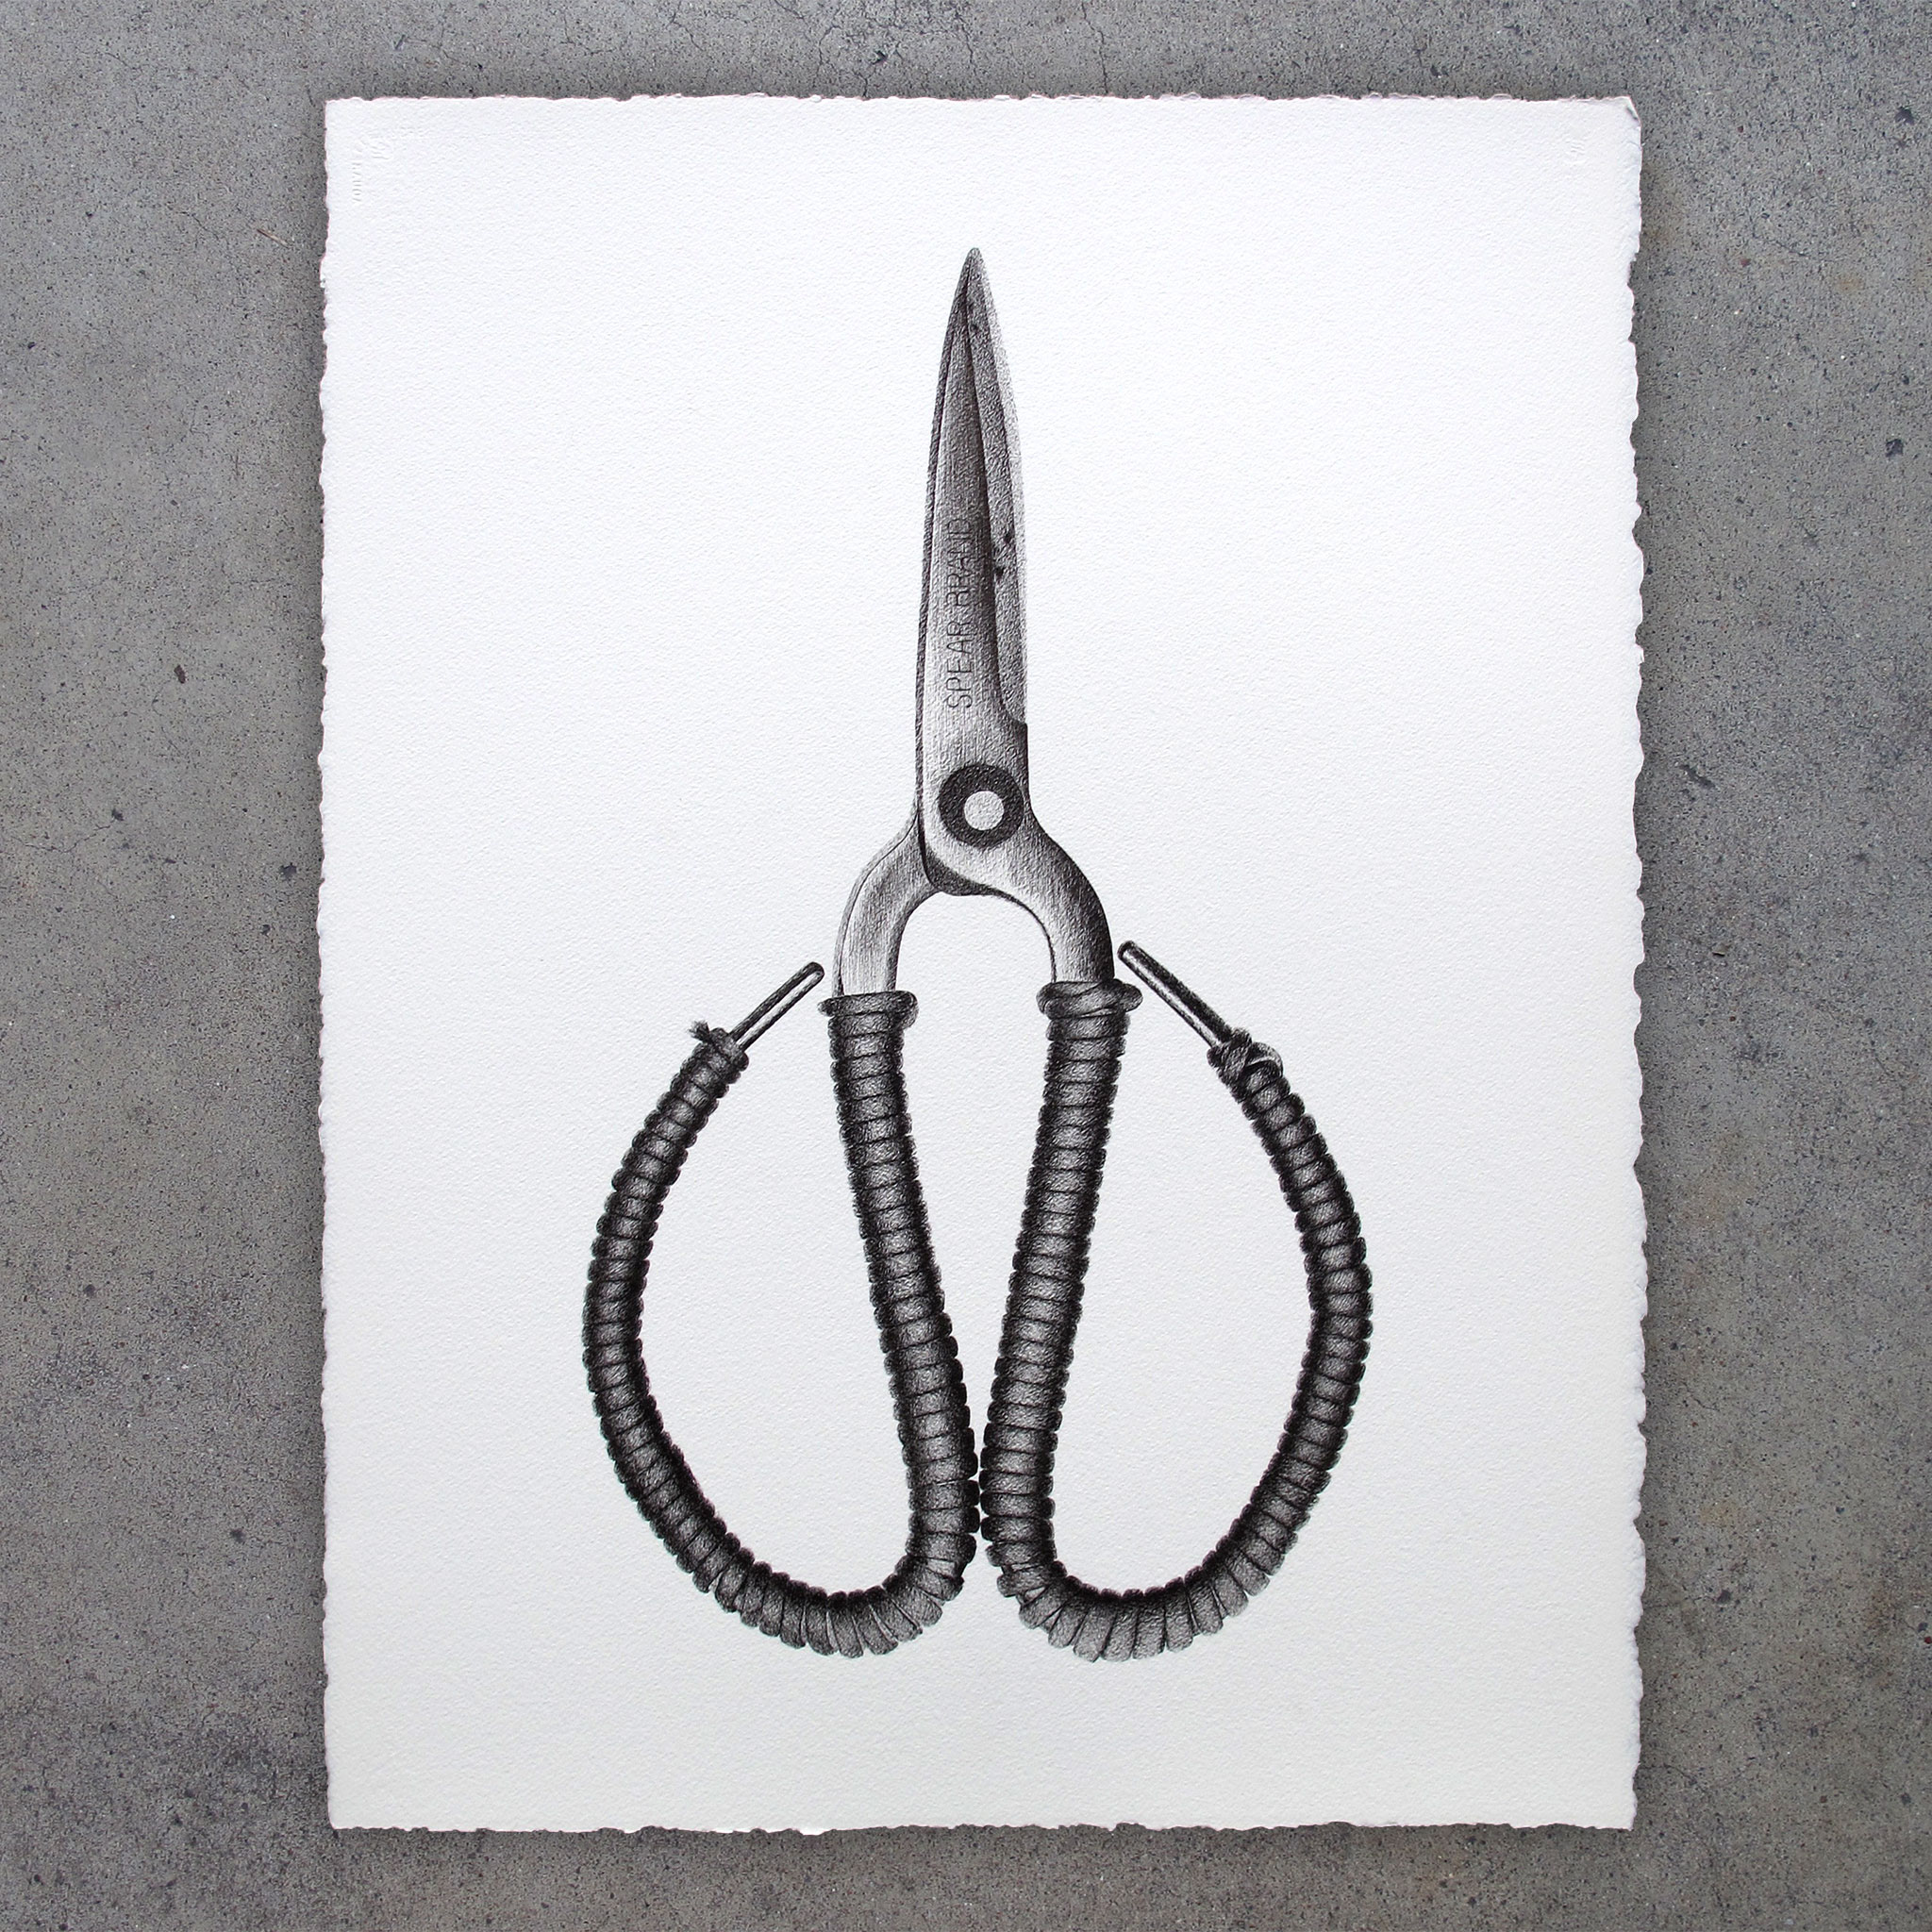 Embroidery Shears